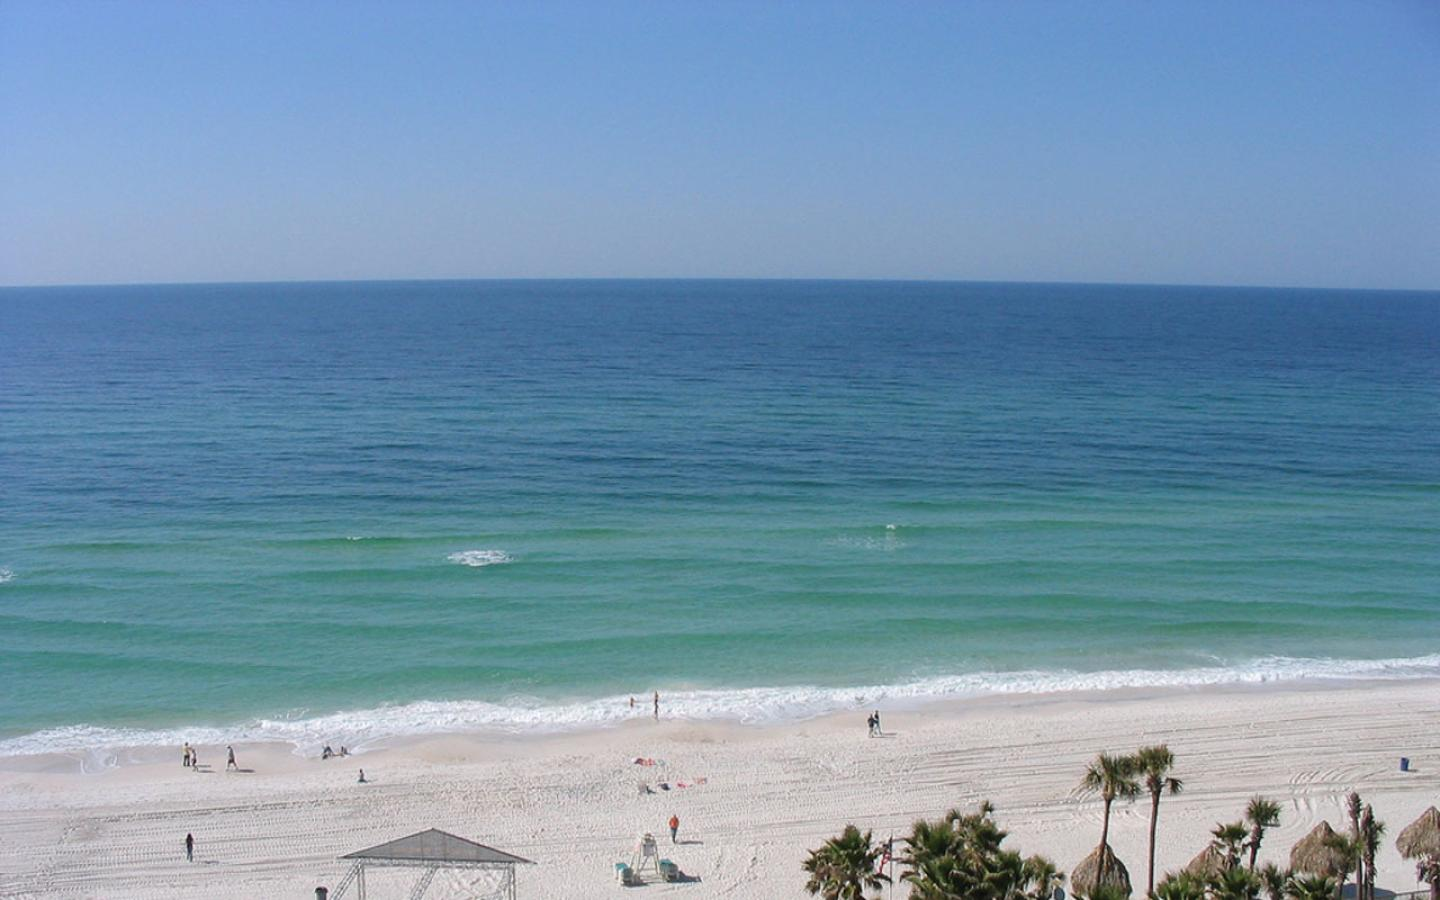 Panama City Beach, Florida Wallpaper #2 1440 x 900